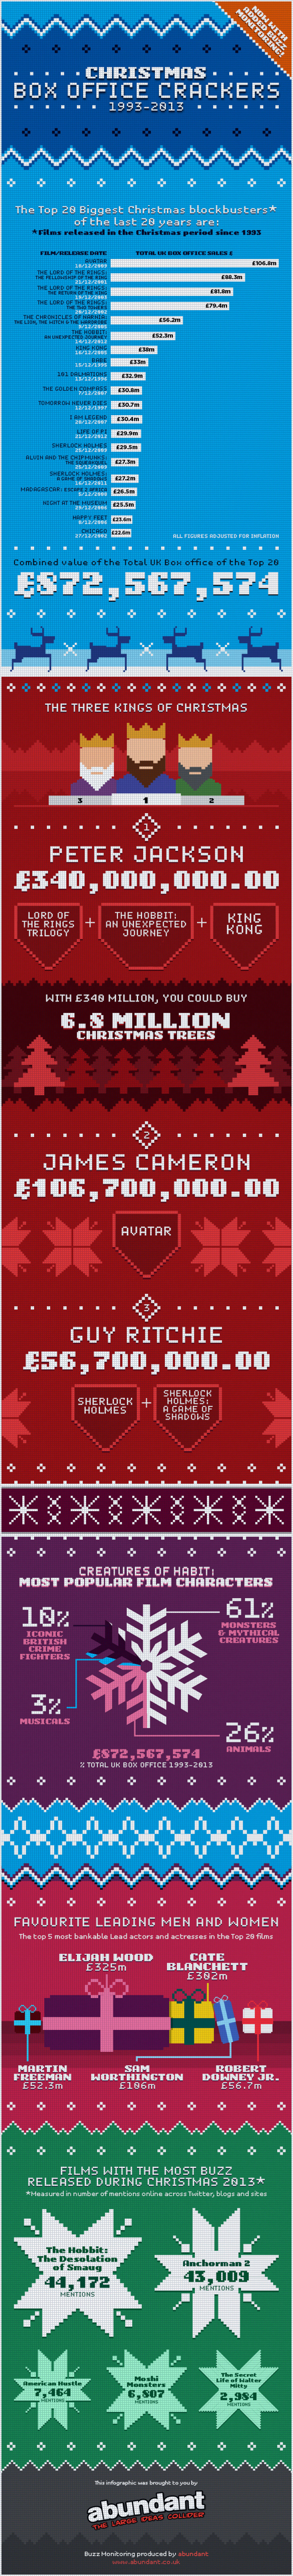 Christmas Box Office Crackers Infographic